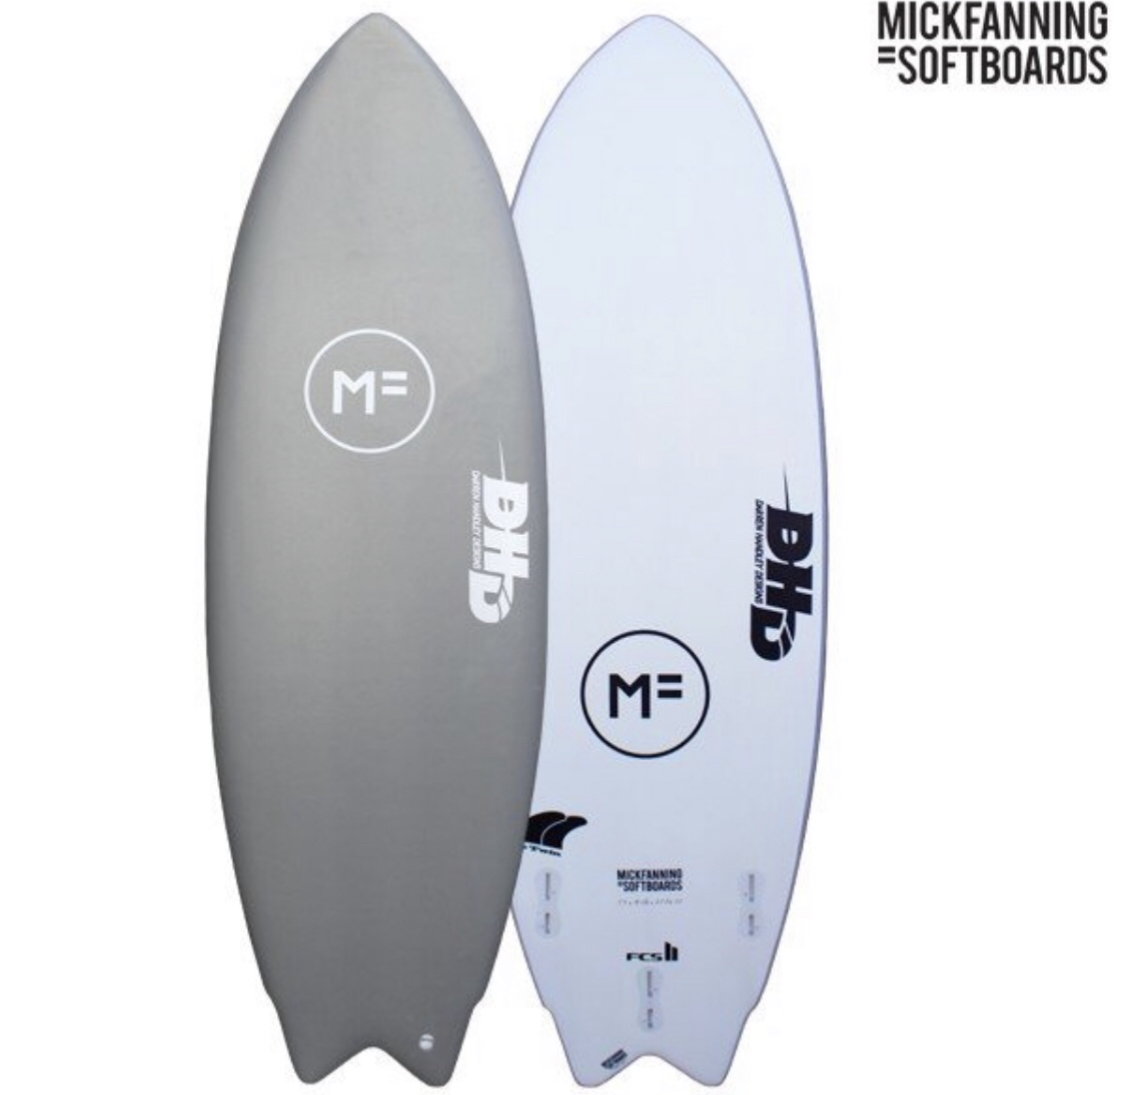 MF MICK FANNING SOFT BOARDS ソフトサーフボード DHD THE TWIN ツイン 6.0 FCS2 3本セット